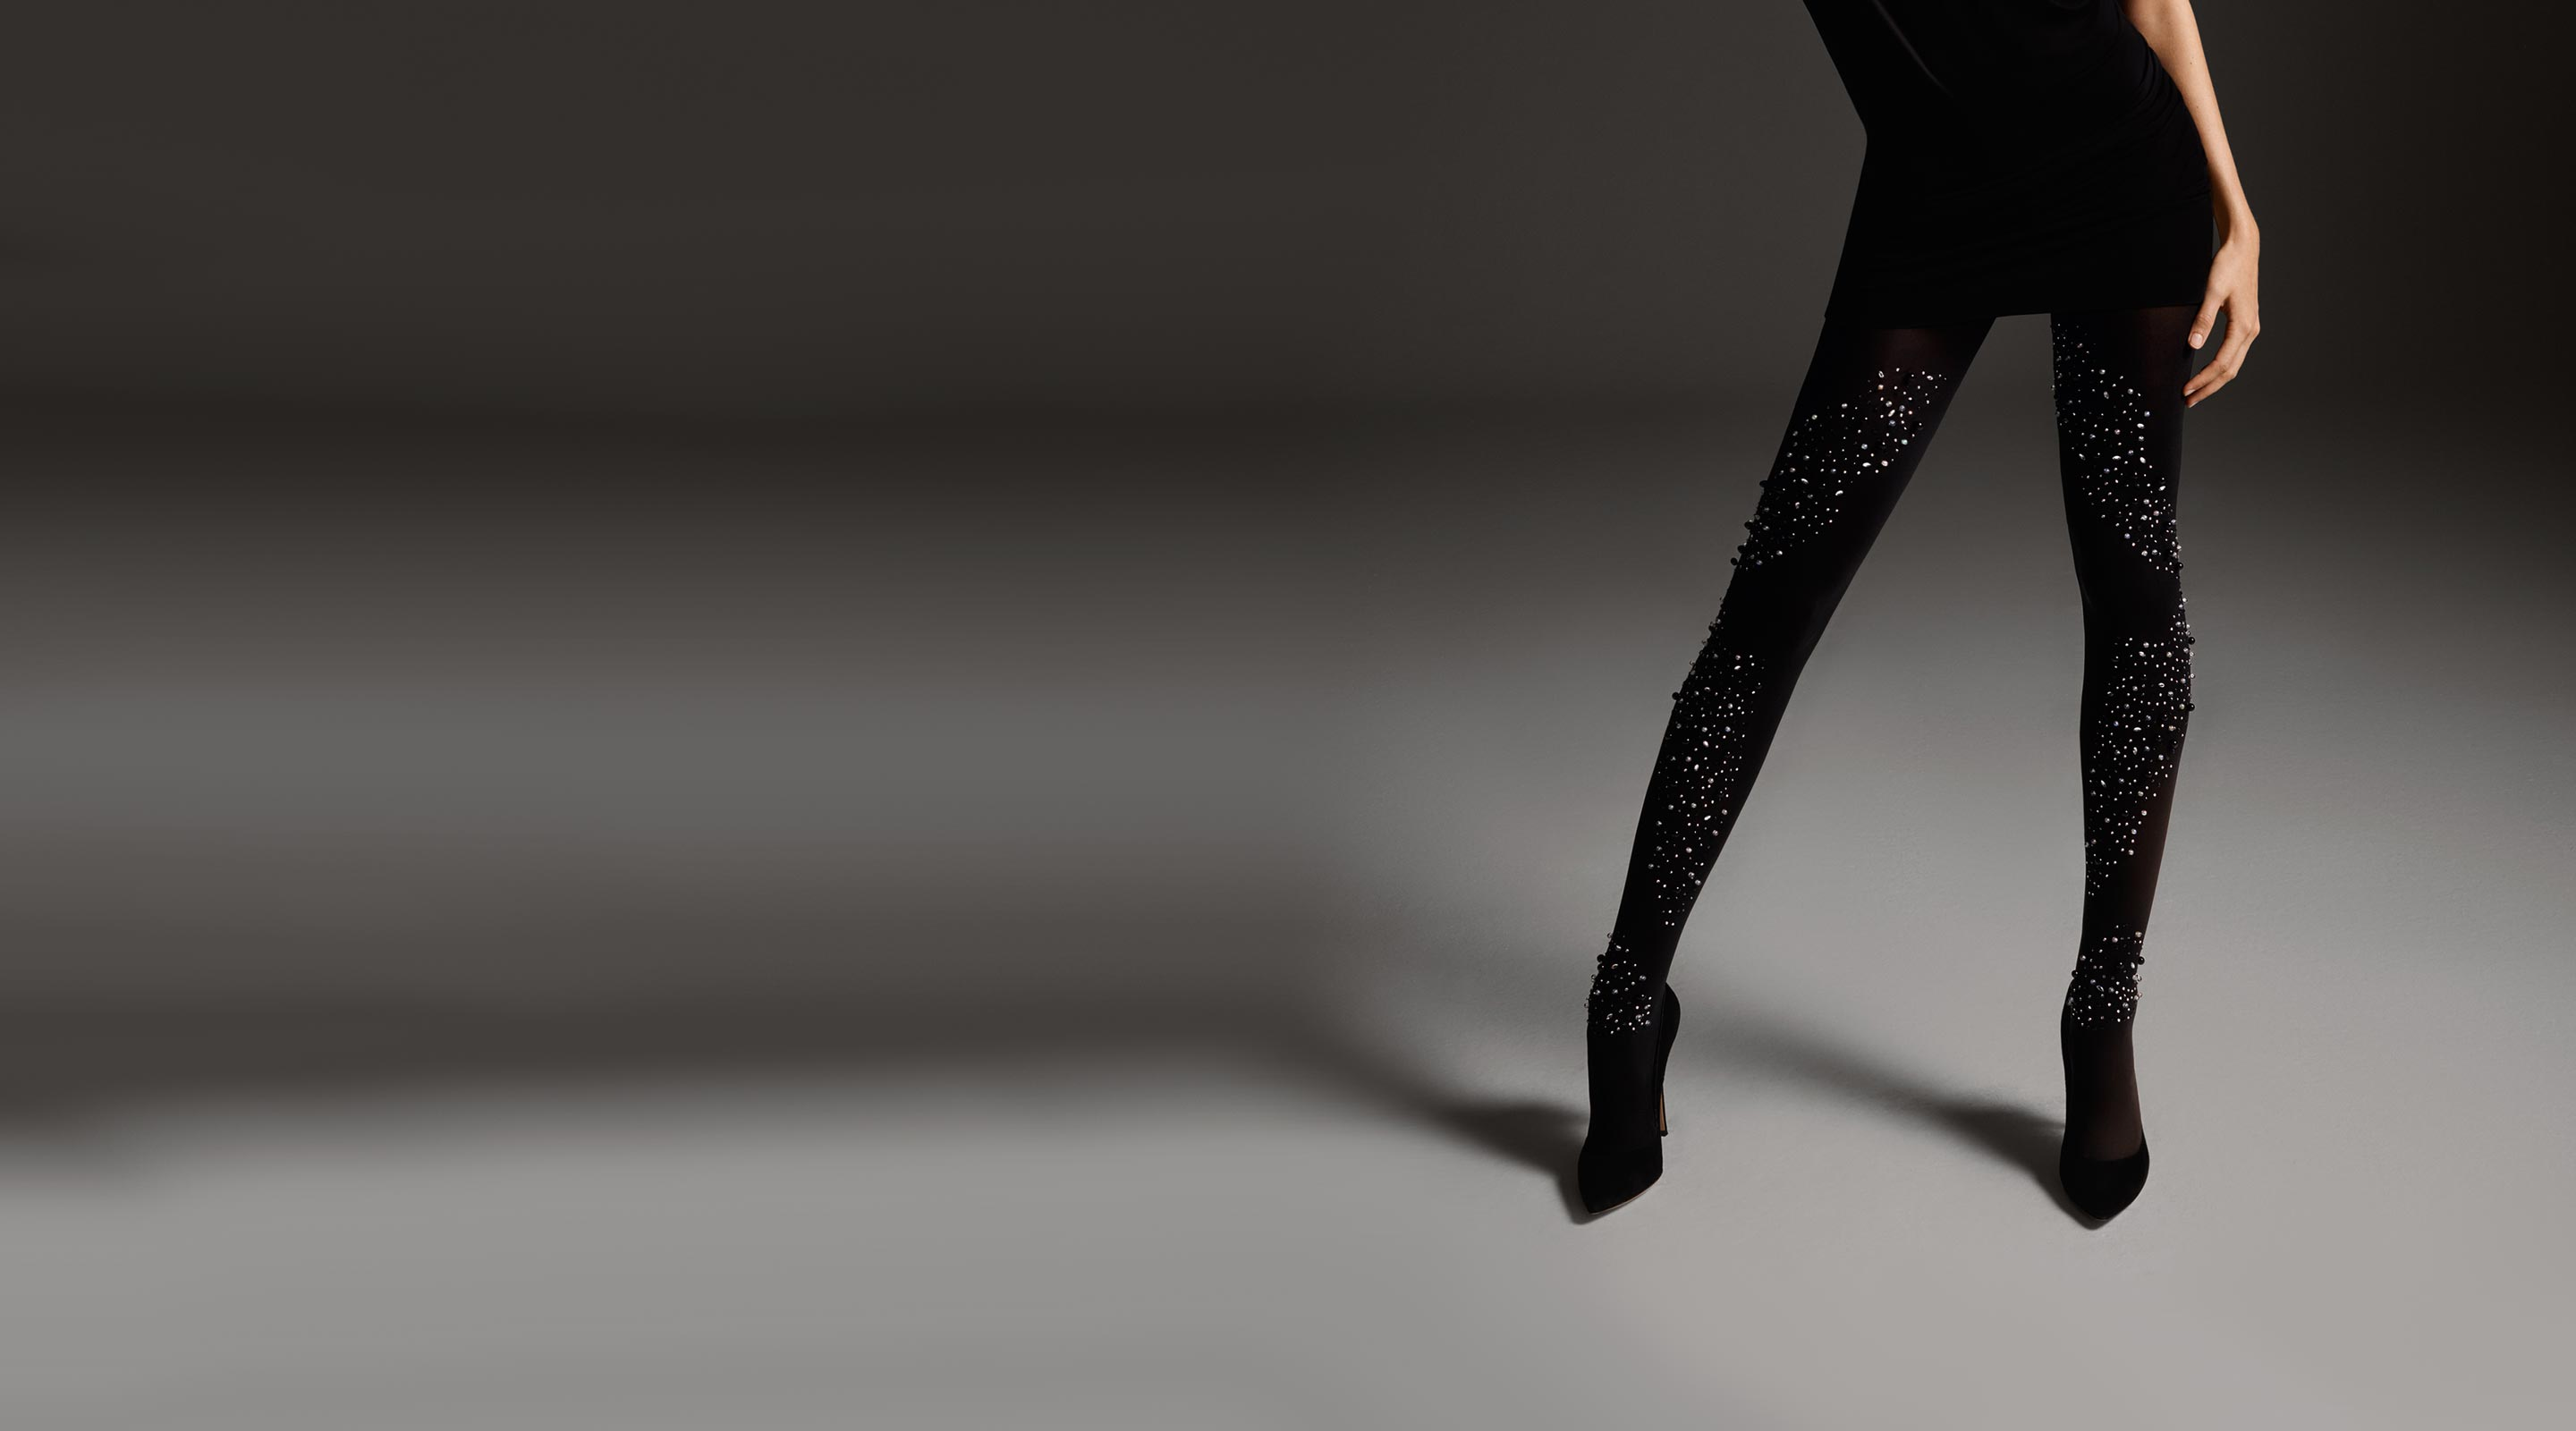 c2cfbf01d Wolford Stockings